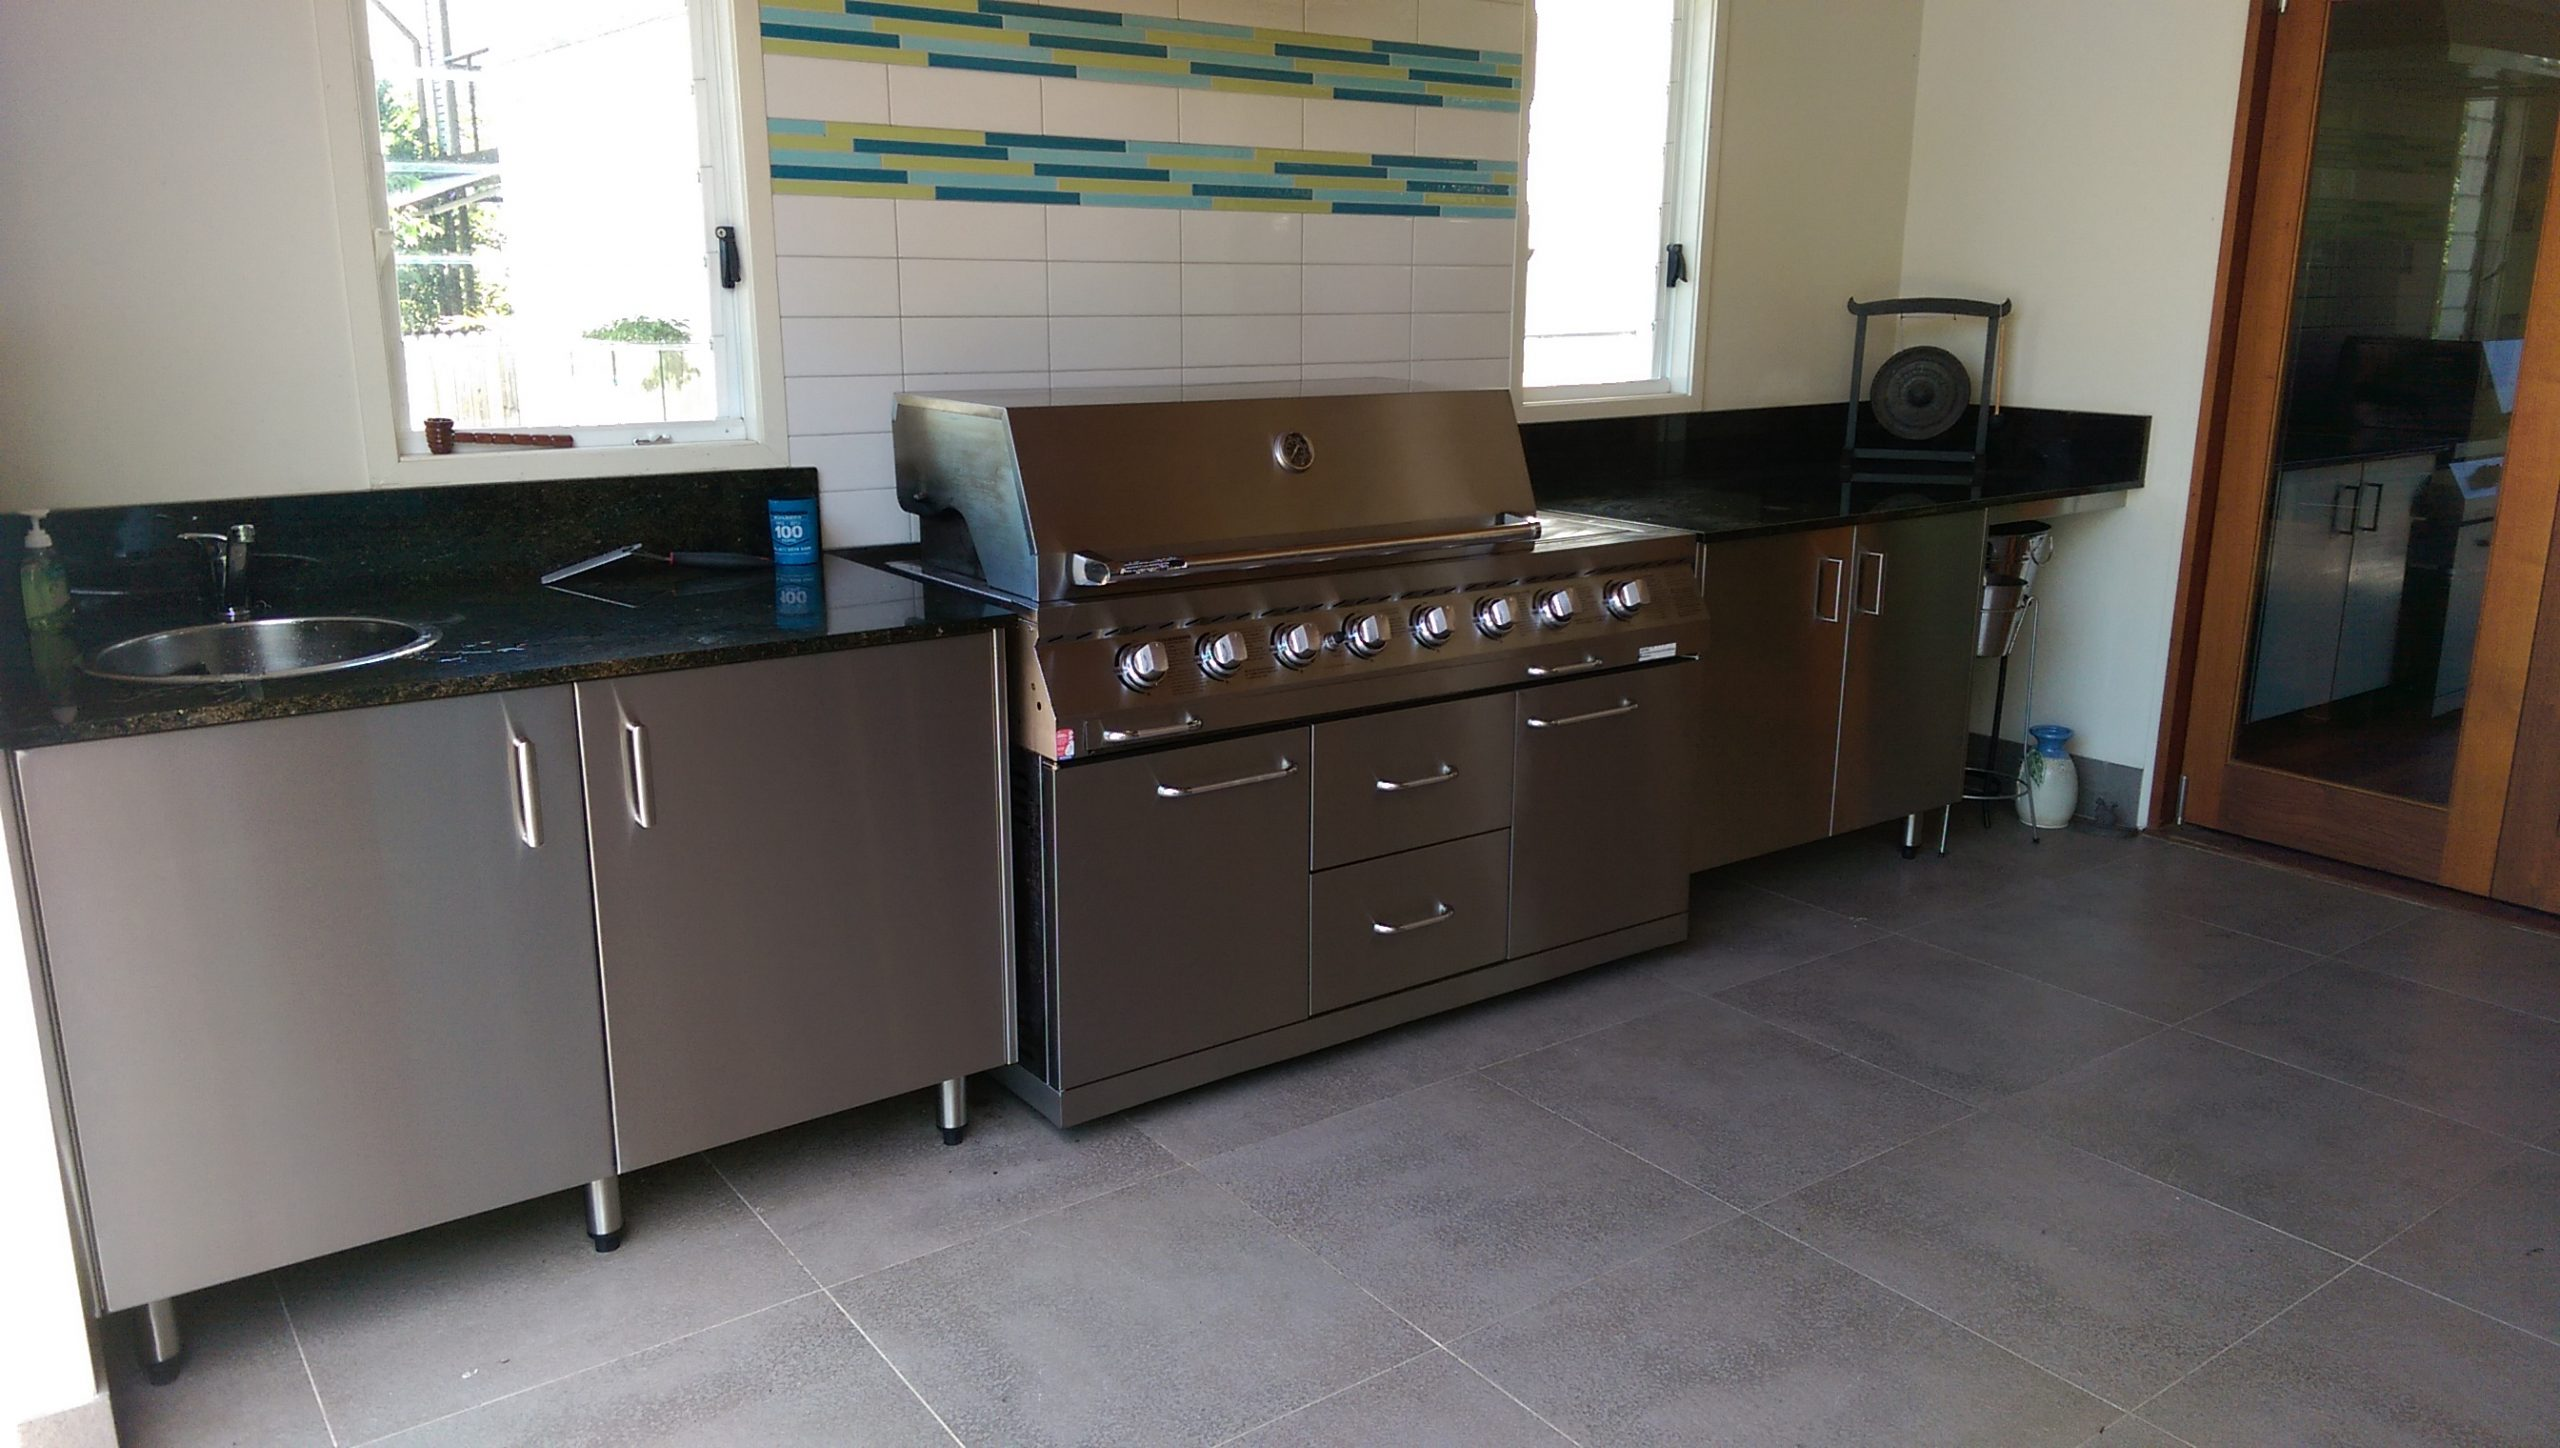 STAINLESS-STEEL-FABRICATION-OUTDOOR-BBQ-KITCHEN